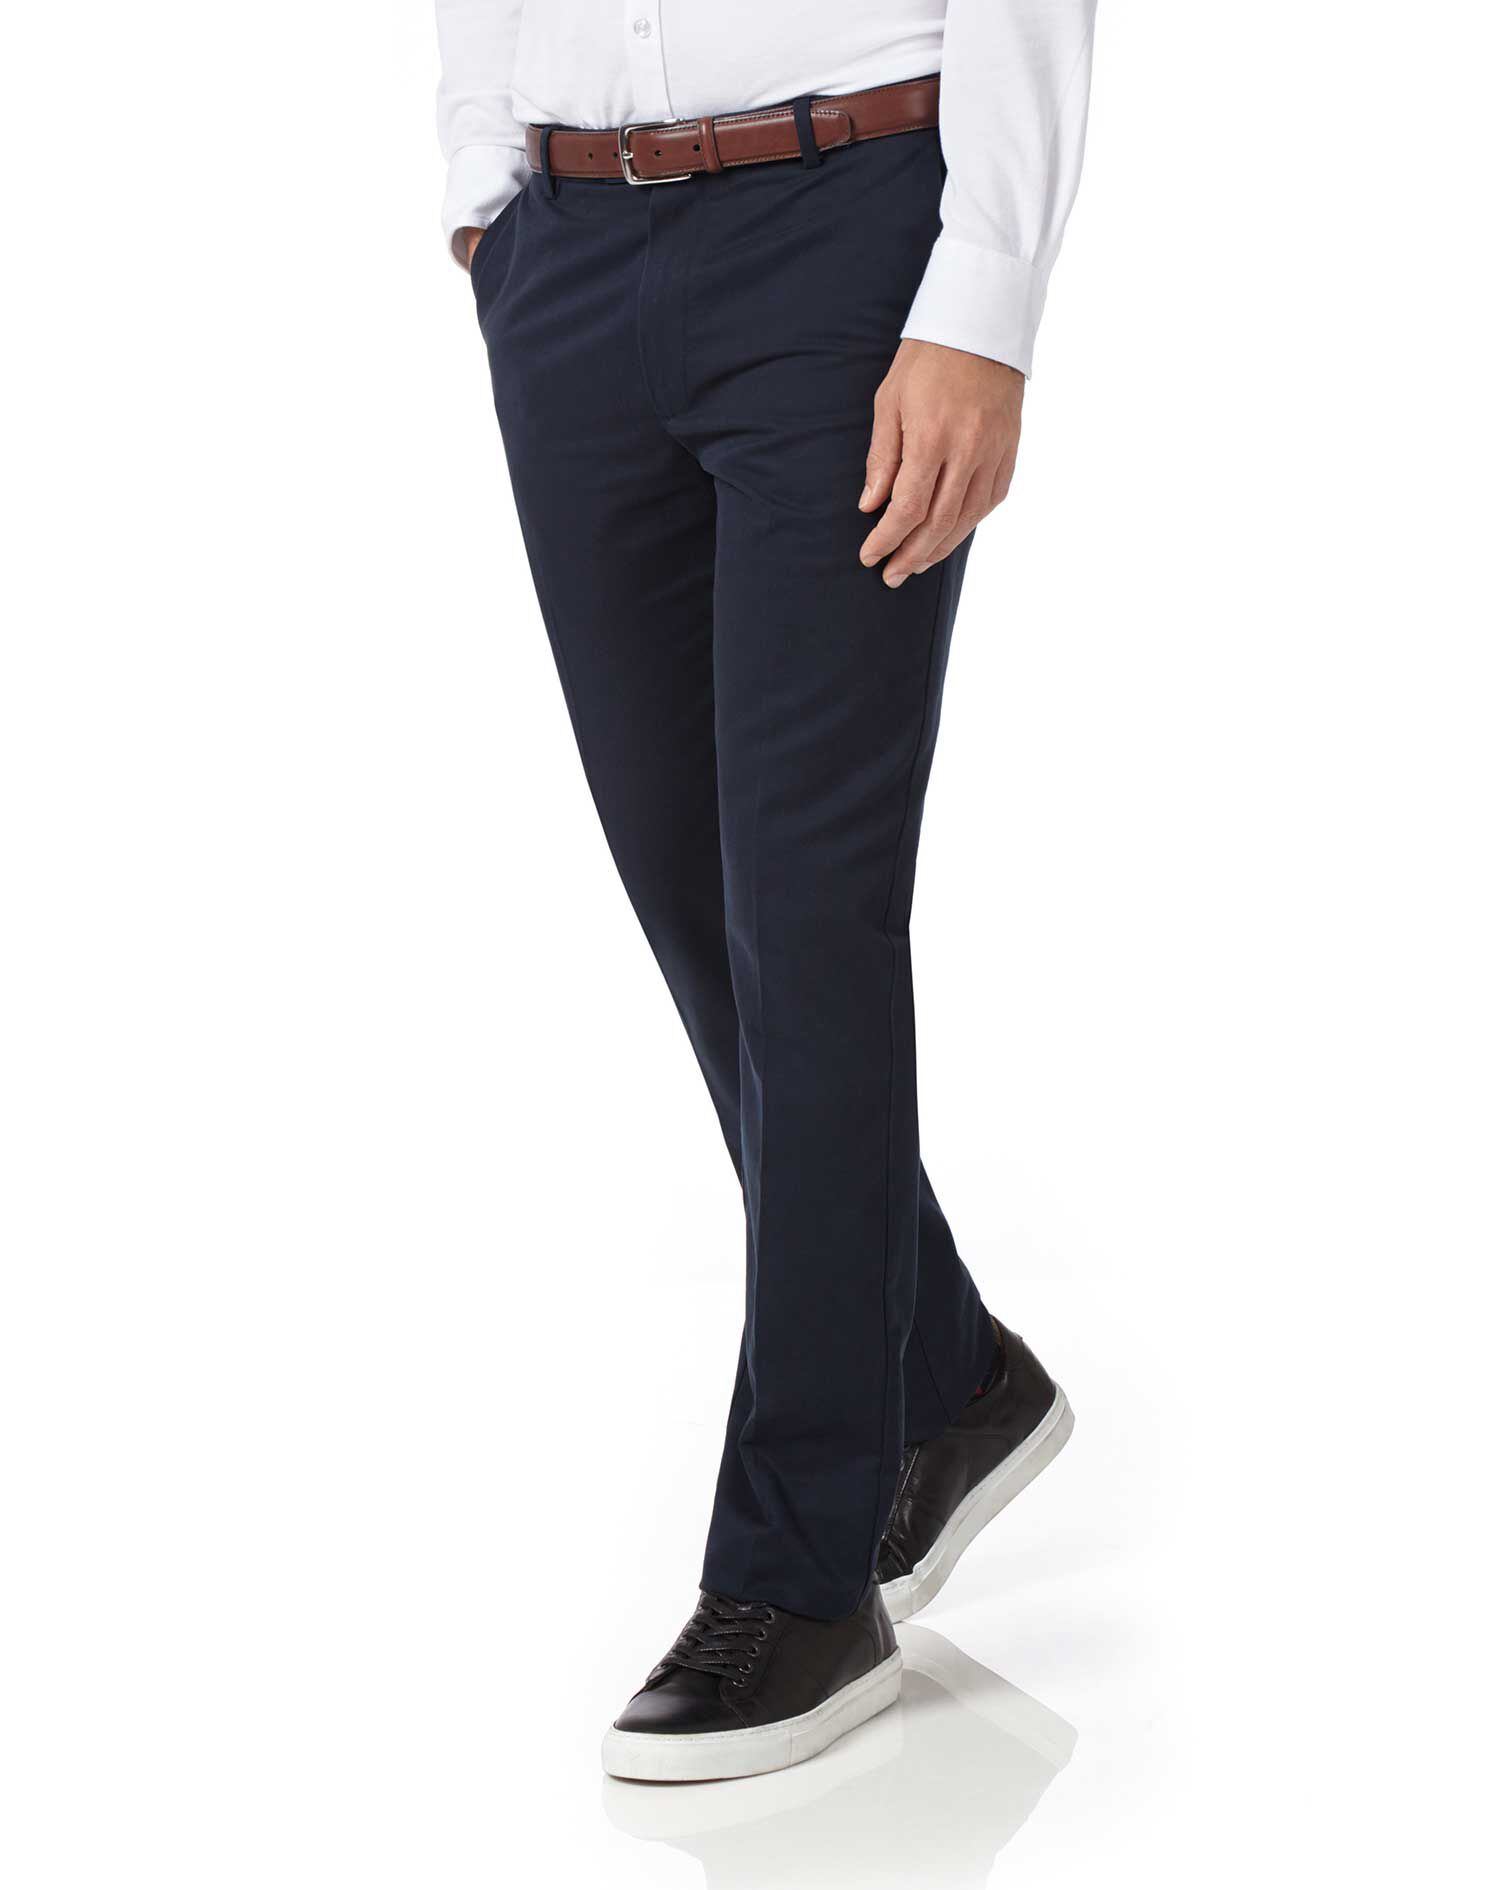 Navy Extra Slim Fit Flat Front Non-Iron Cotton Chino Trousers Size W38 L29 by Charles Tyrwhitt